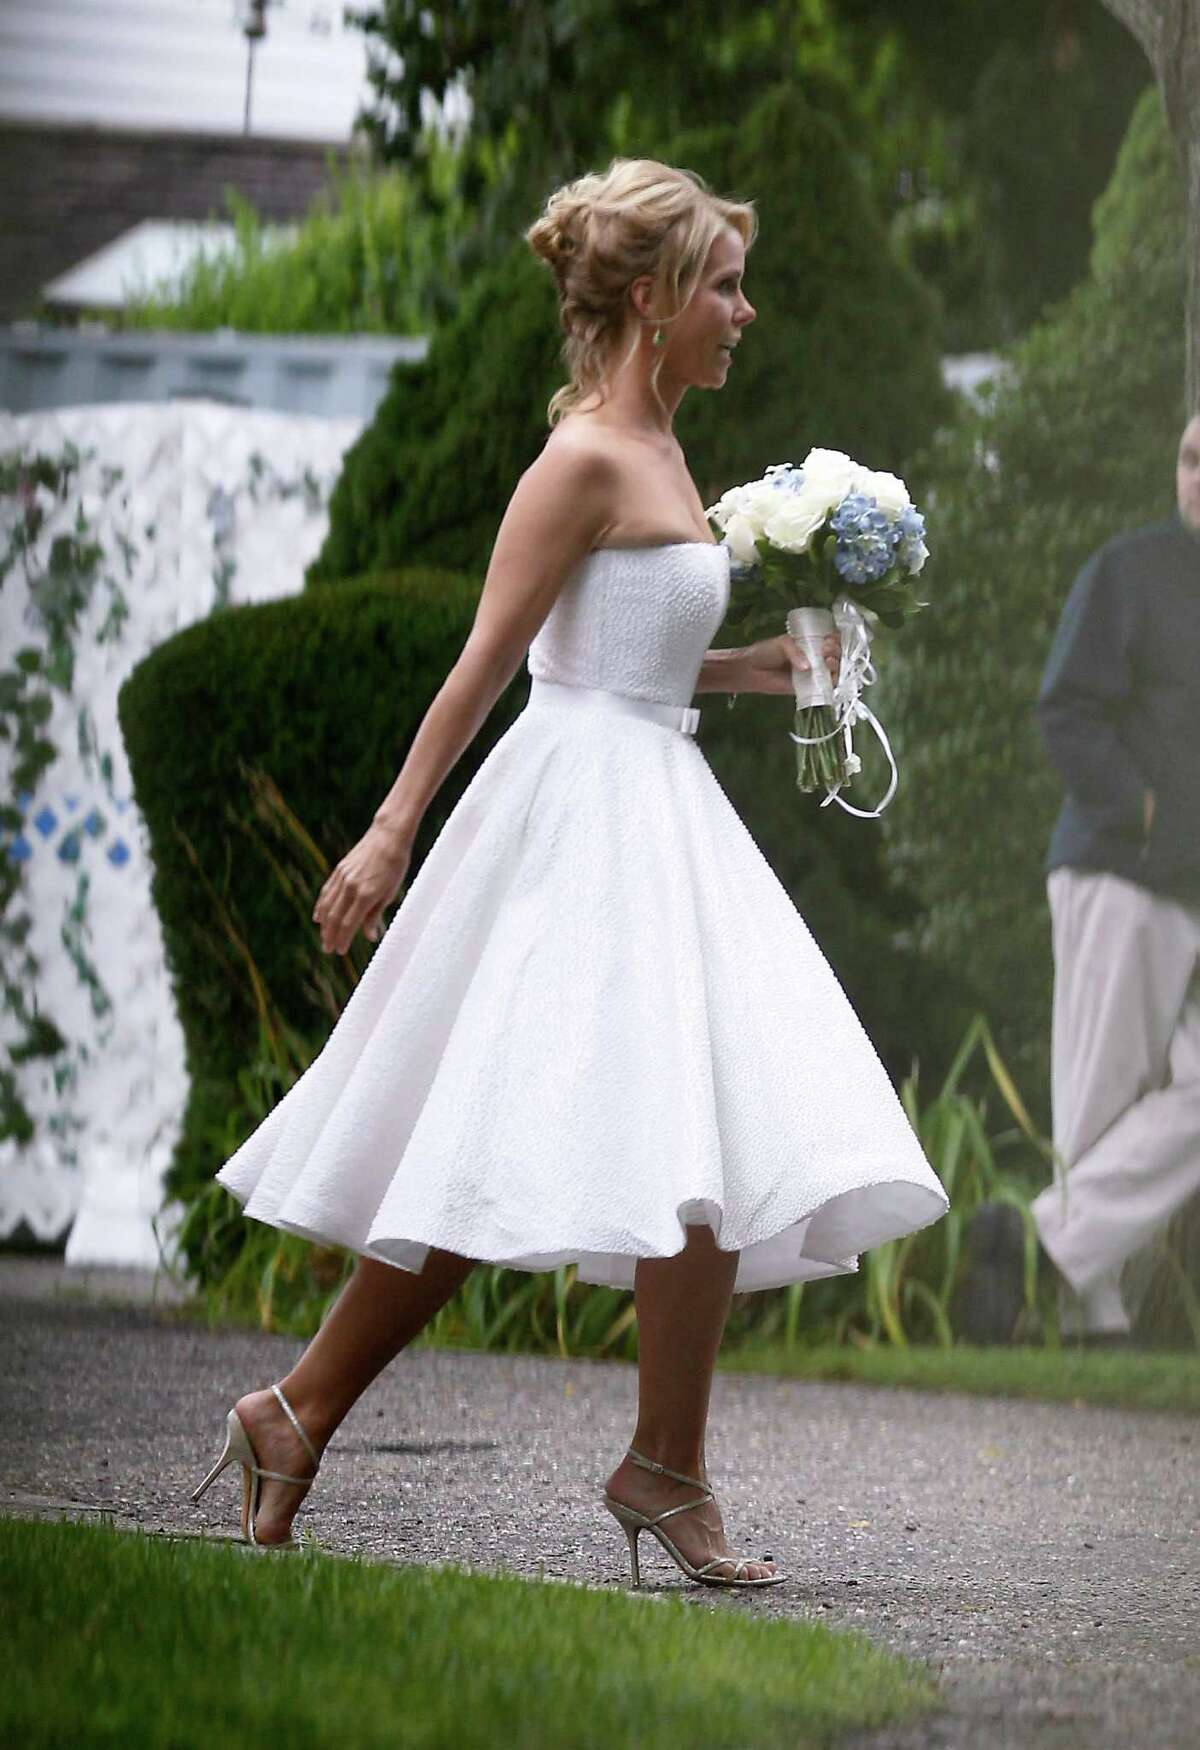 Actress Cheryl Hines walks across a lawn to the tent where her wedding to Robert F. Kennedy Jr., will take place in Hyannis Port, Mass. on Saturday, Aug. 2, 2014. (AP Photo/Stew Milne) ORG XMIT: MASM102